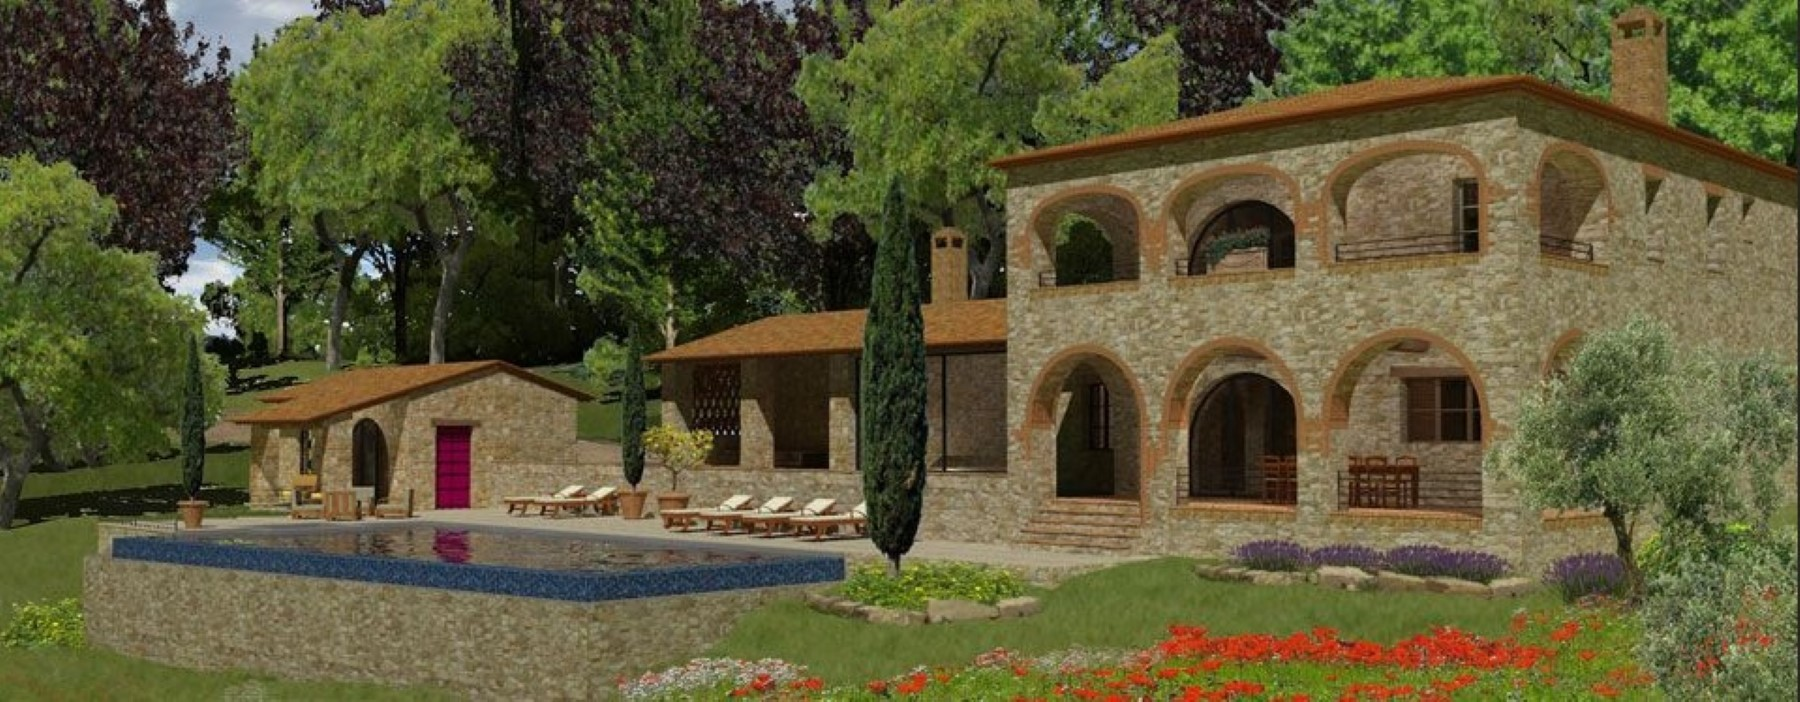 Single Family Home for Sale at Tuscany luxury lifestyle homes Casole D'Elsa Casole D Elsa, Siena 53031 Italy